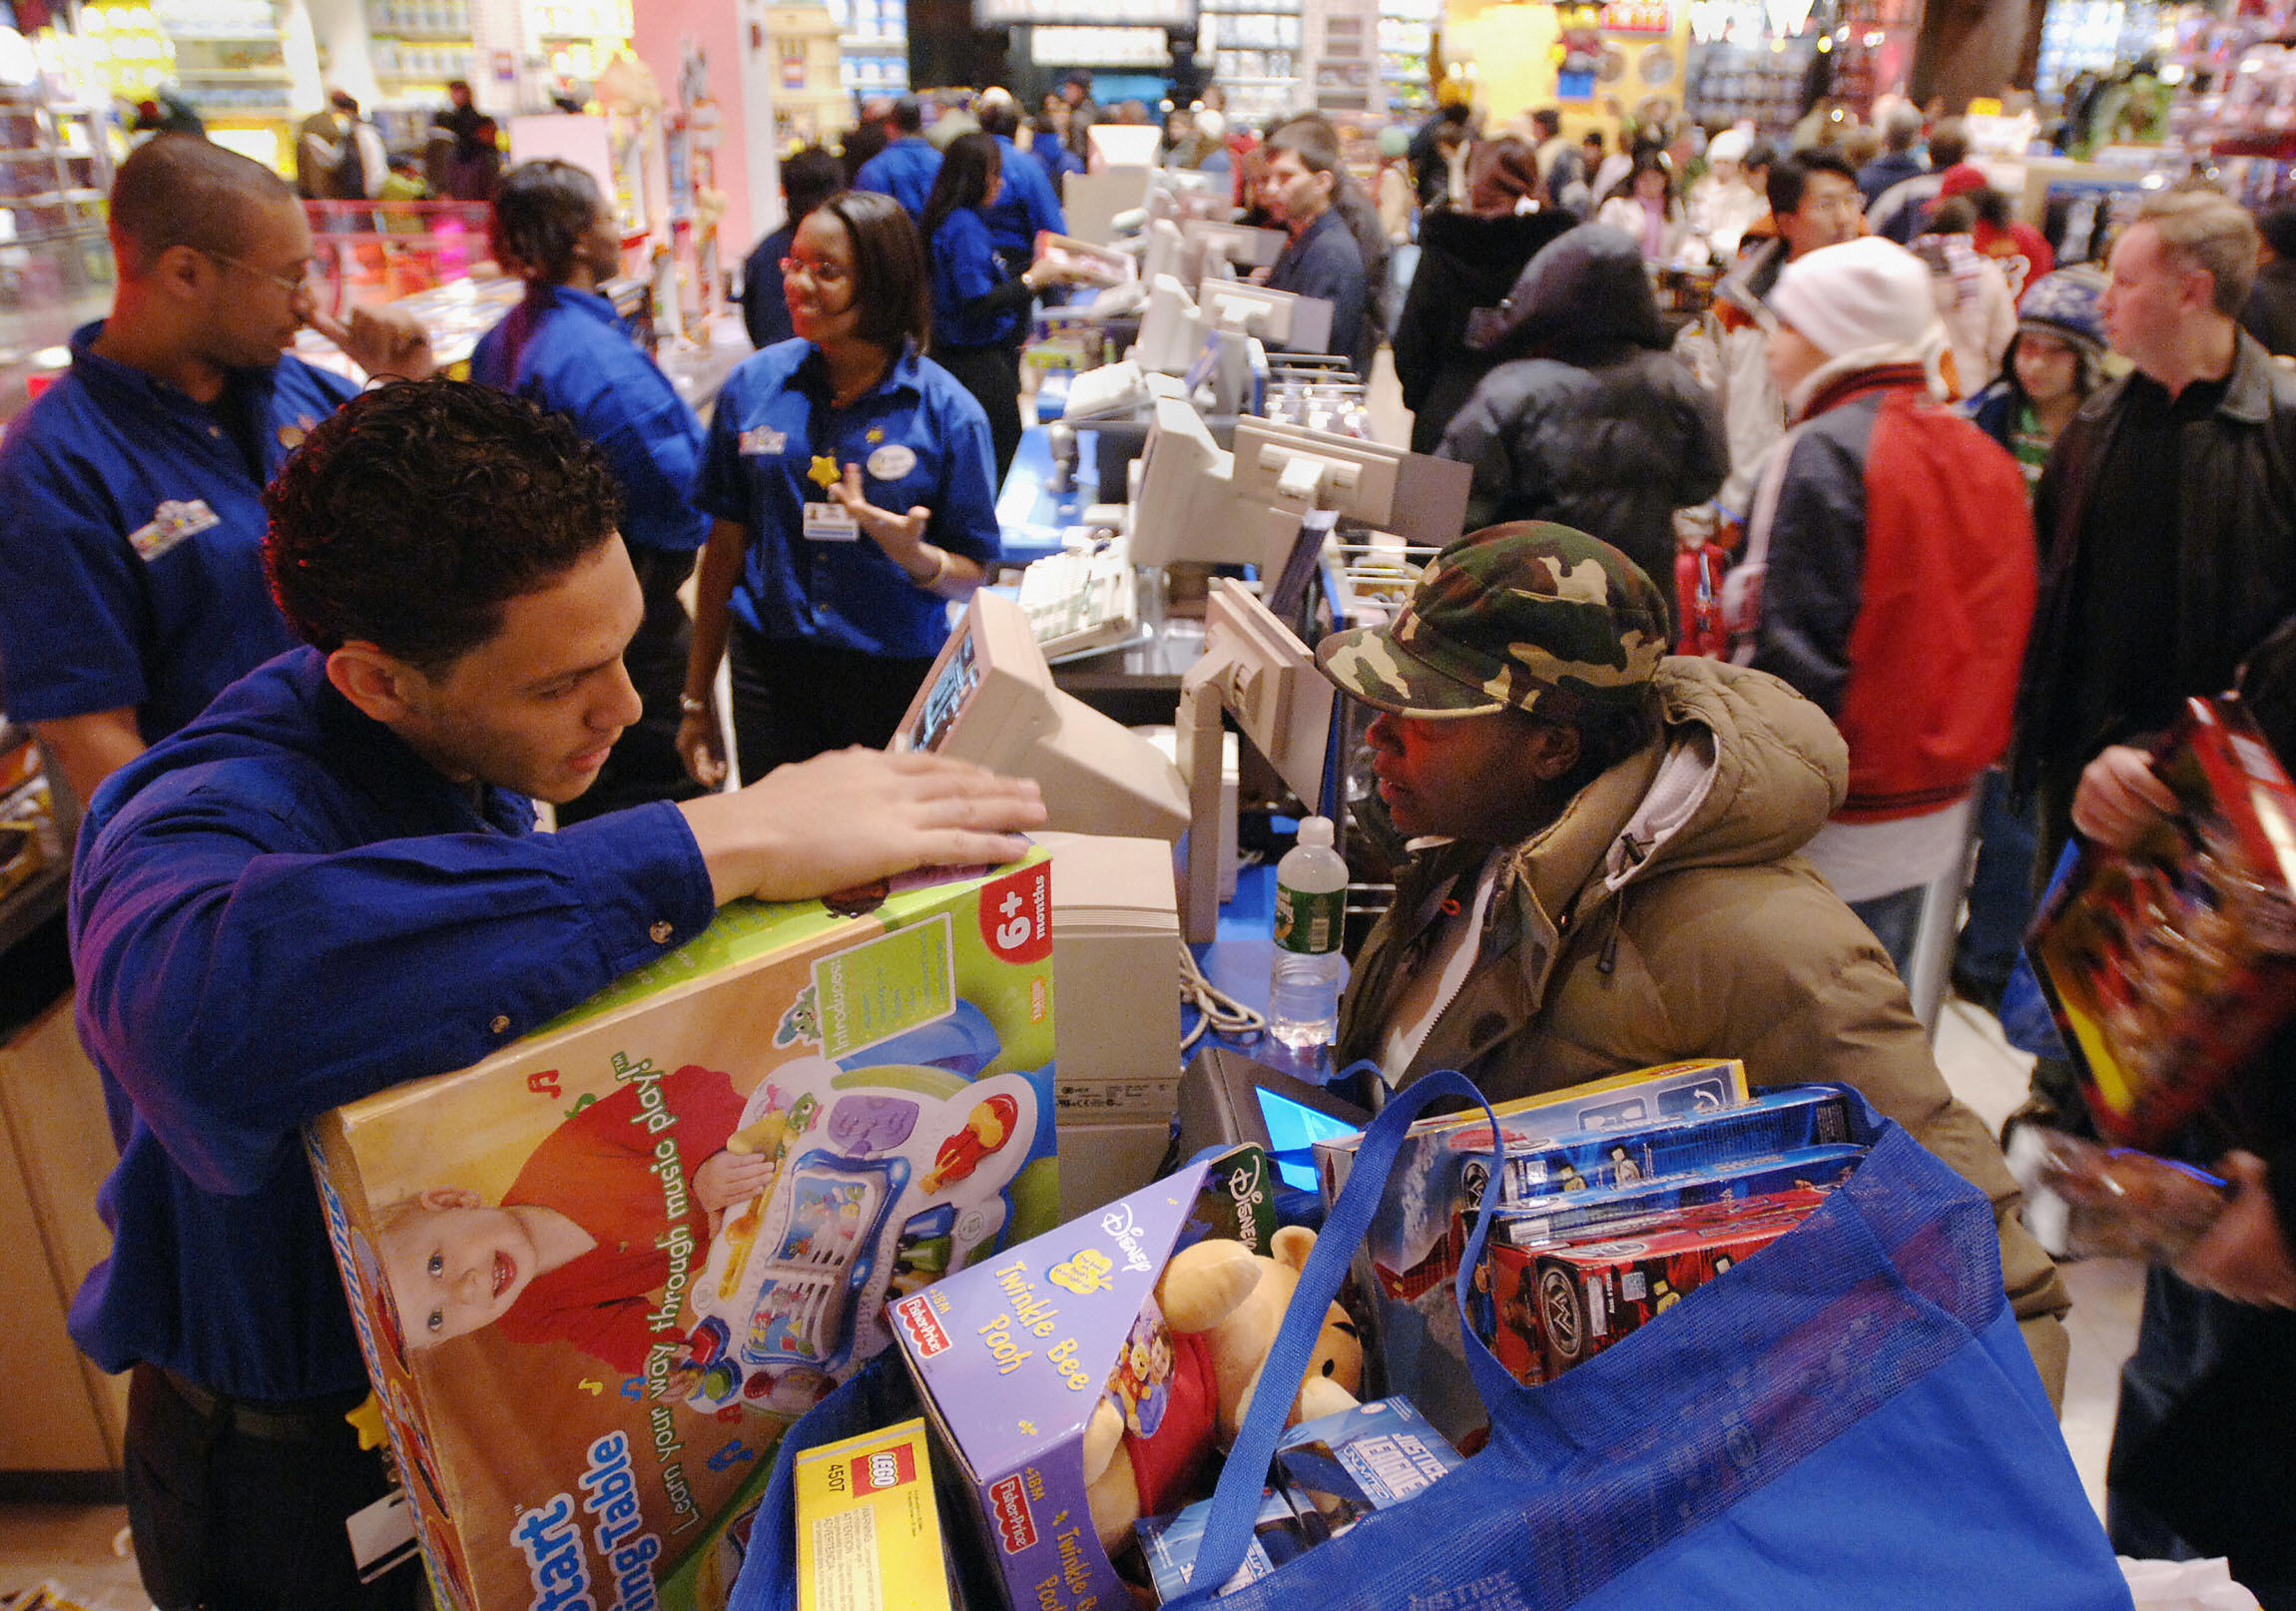 A parent buys Christmas gifts for her three children at a Toys R Us store in New York's Times Square.